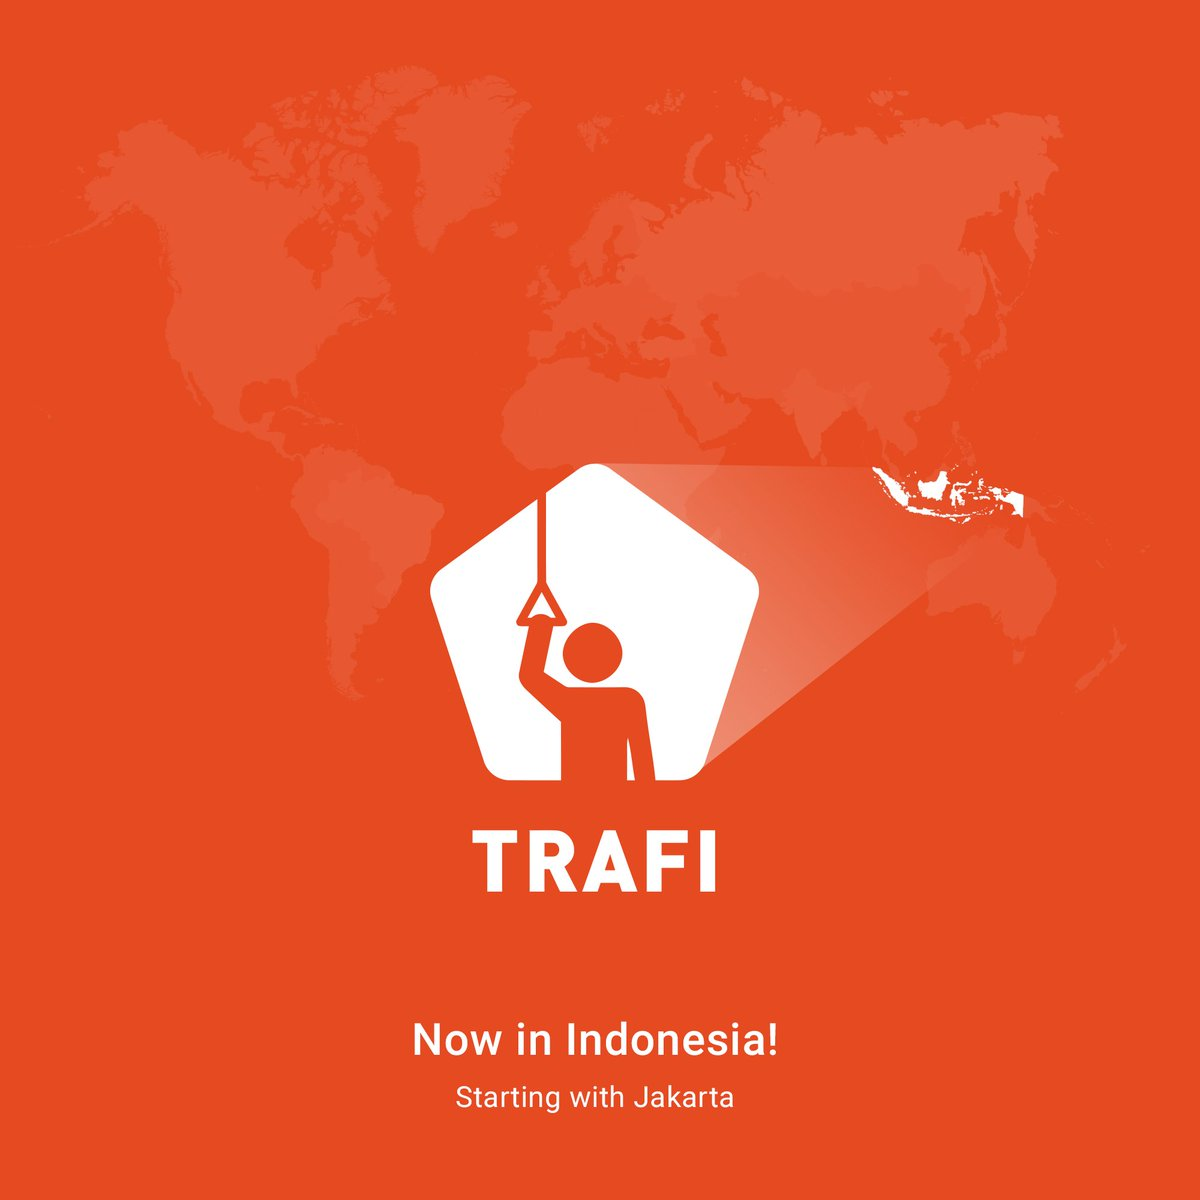 Selamat Datang!  #TRAFIapp is now live in #Indonesia! Download our #app & enjoy #publictransit in #Jakarta! https://t.co/fuwIzBXHQy